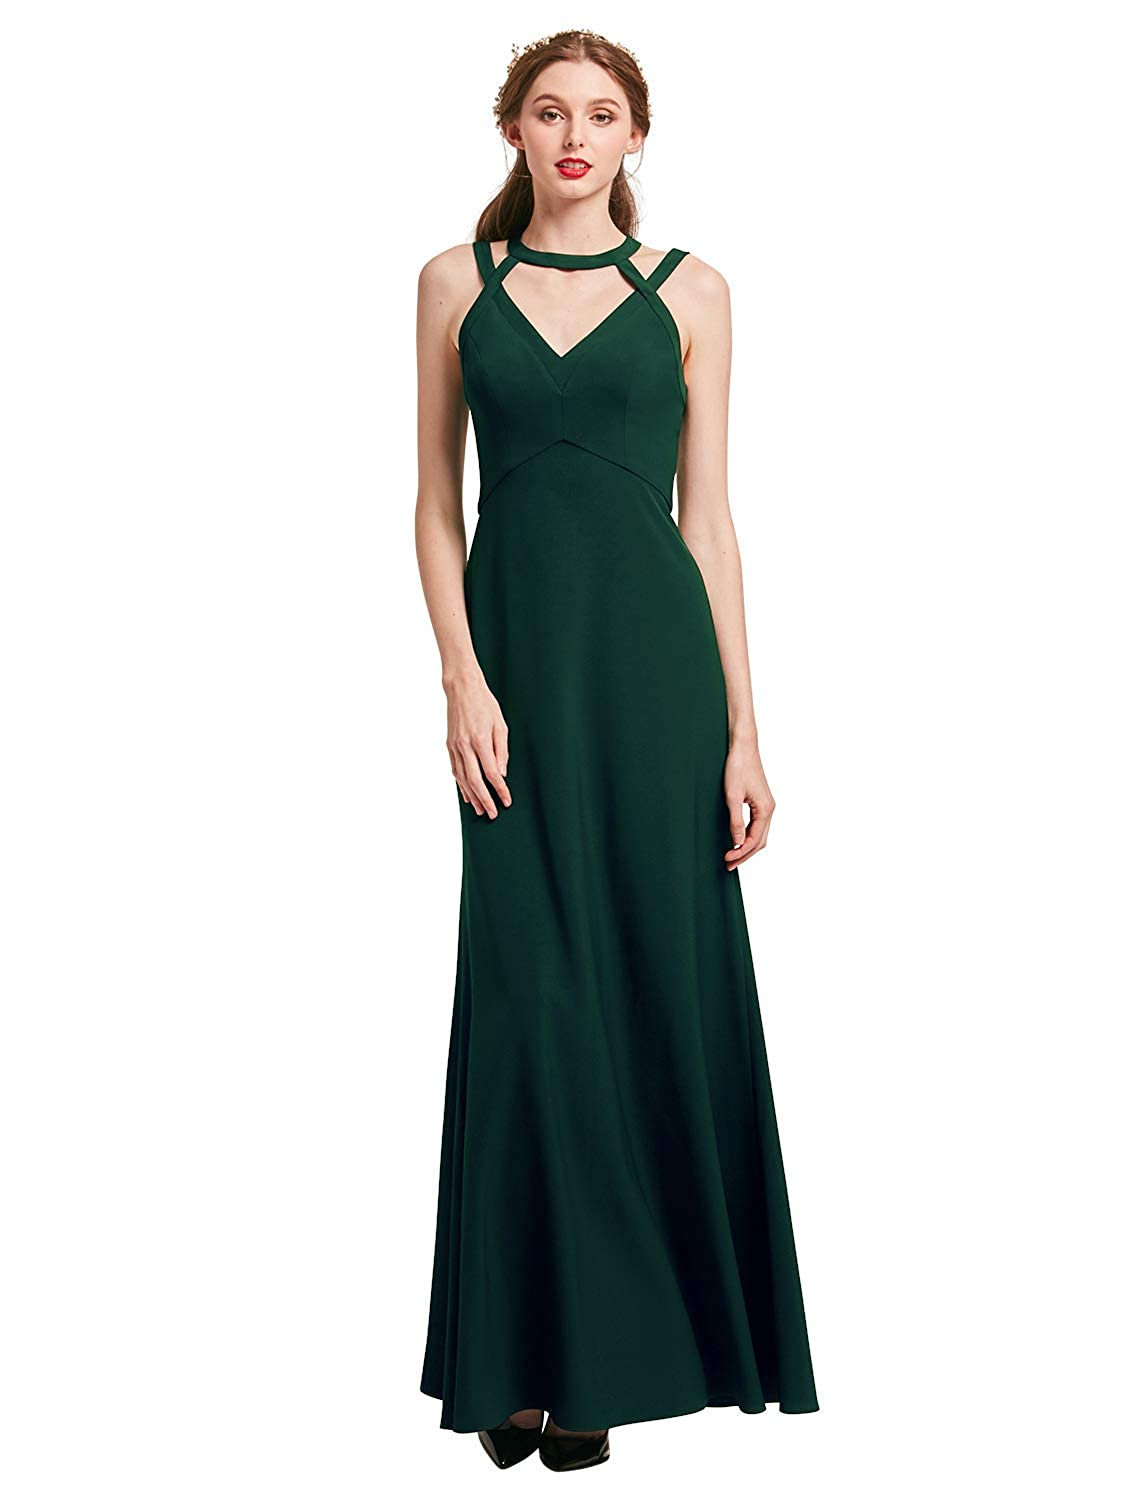 Dark Green Alicepub Sexy Halter Evening Gowns Women Formal Dresses Elegant Prom Dress Long